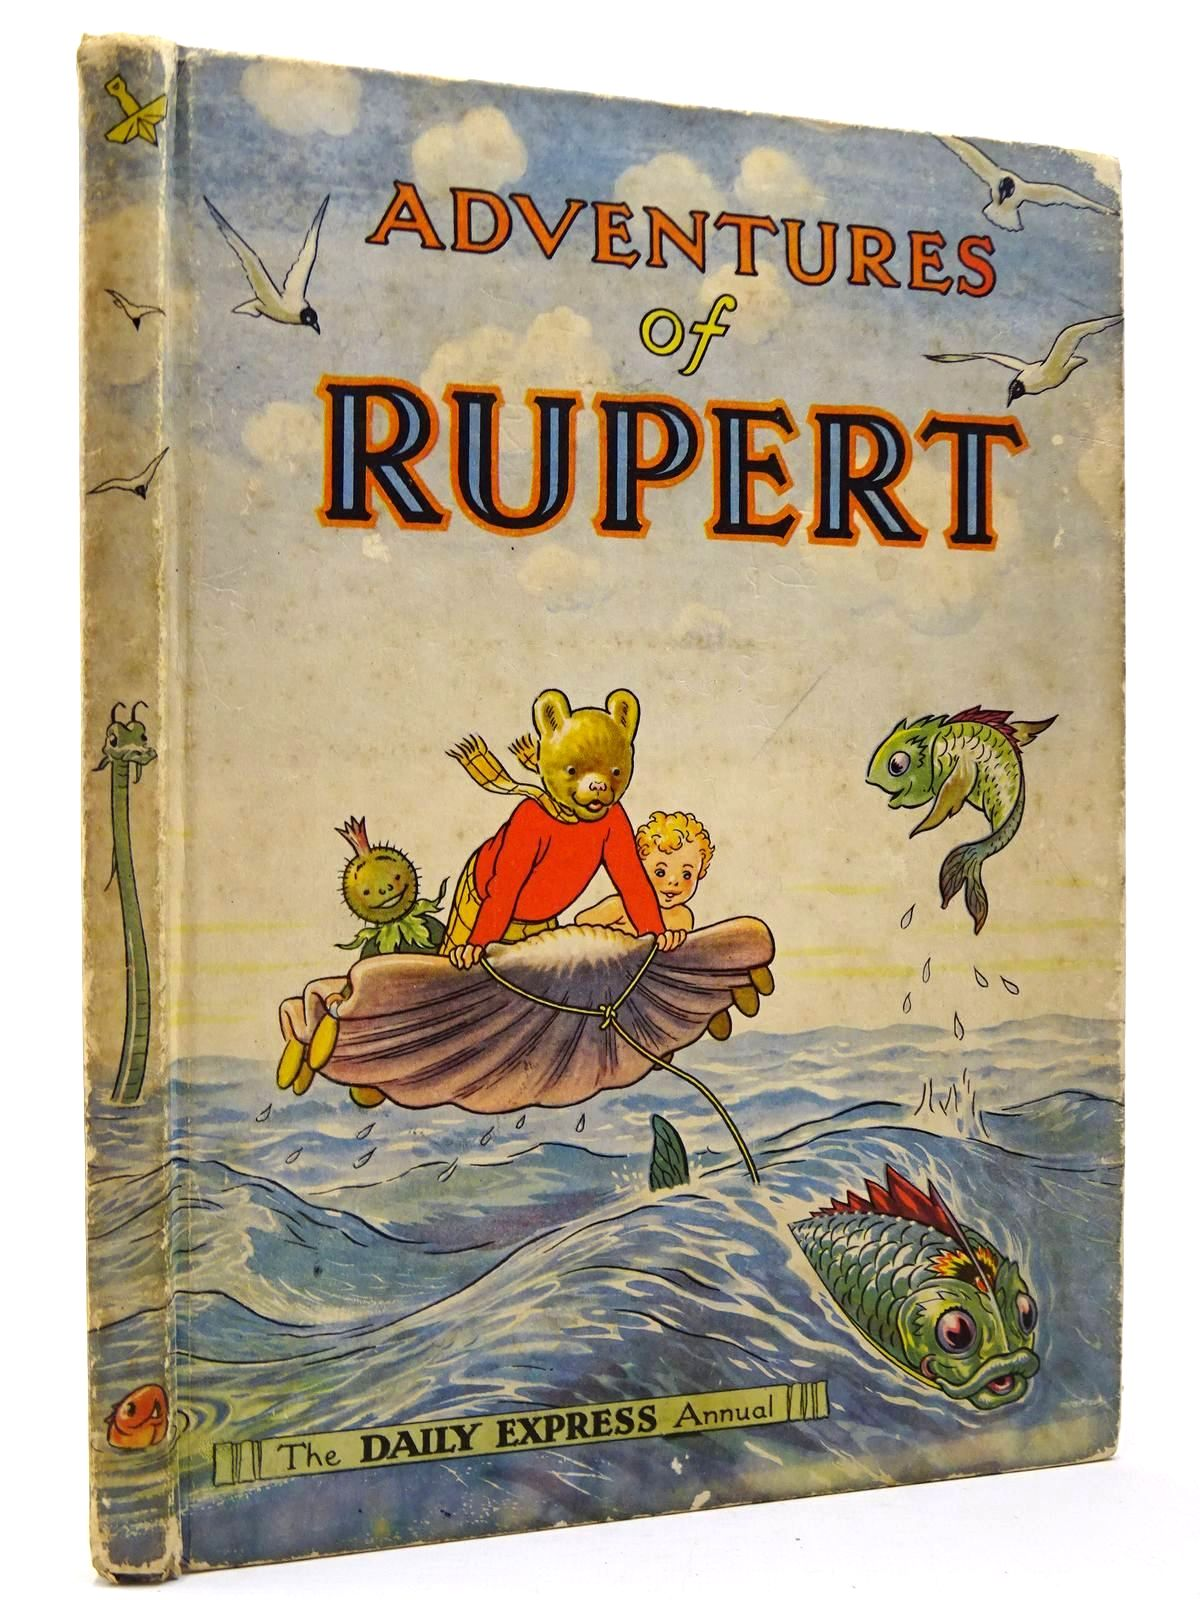 Photo of RUPERT ANNUAL 1950 - ADVENTURES OF RUPERT